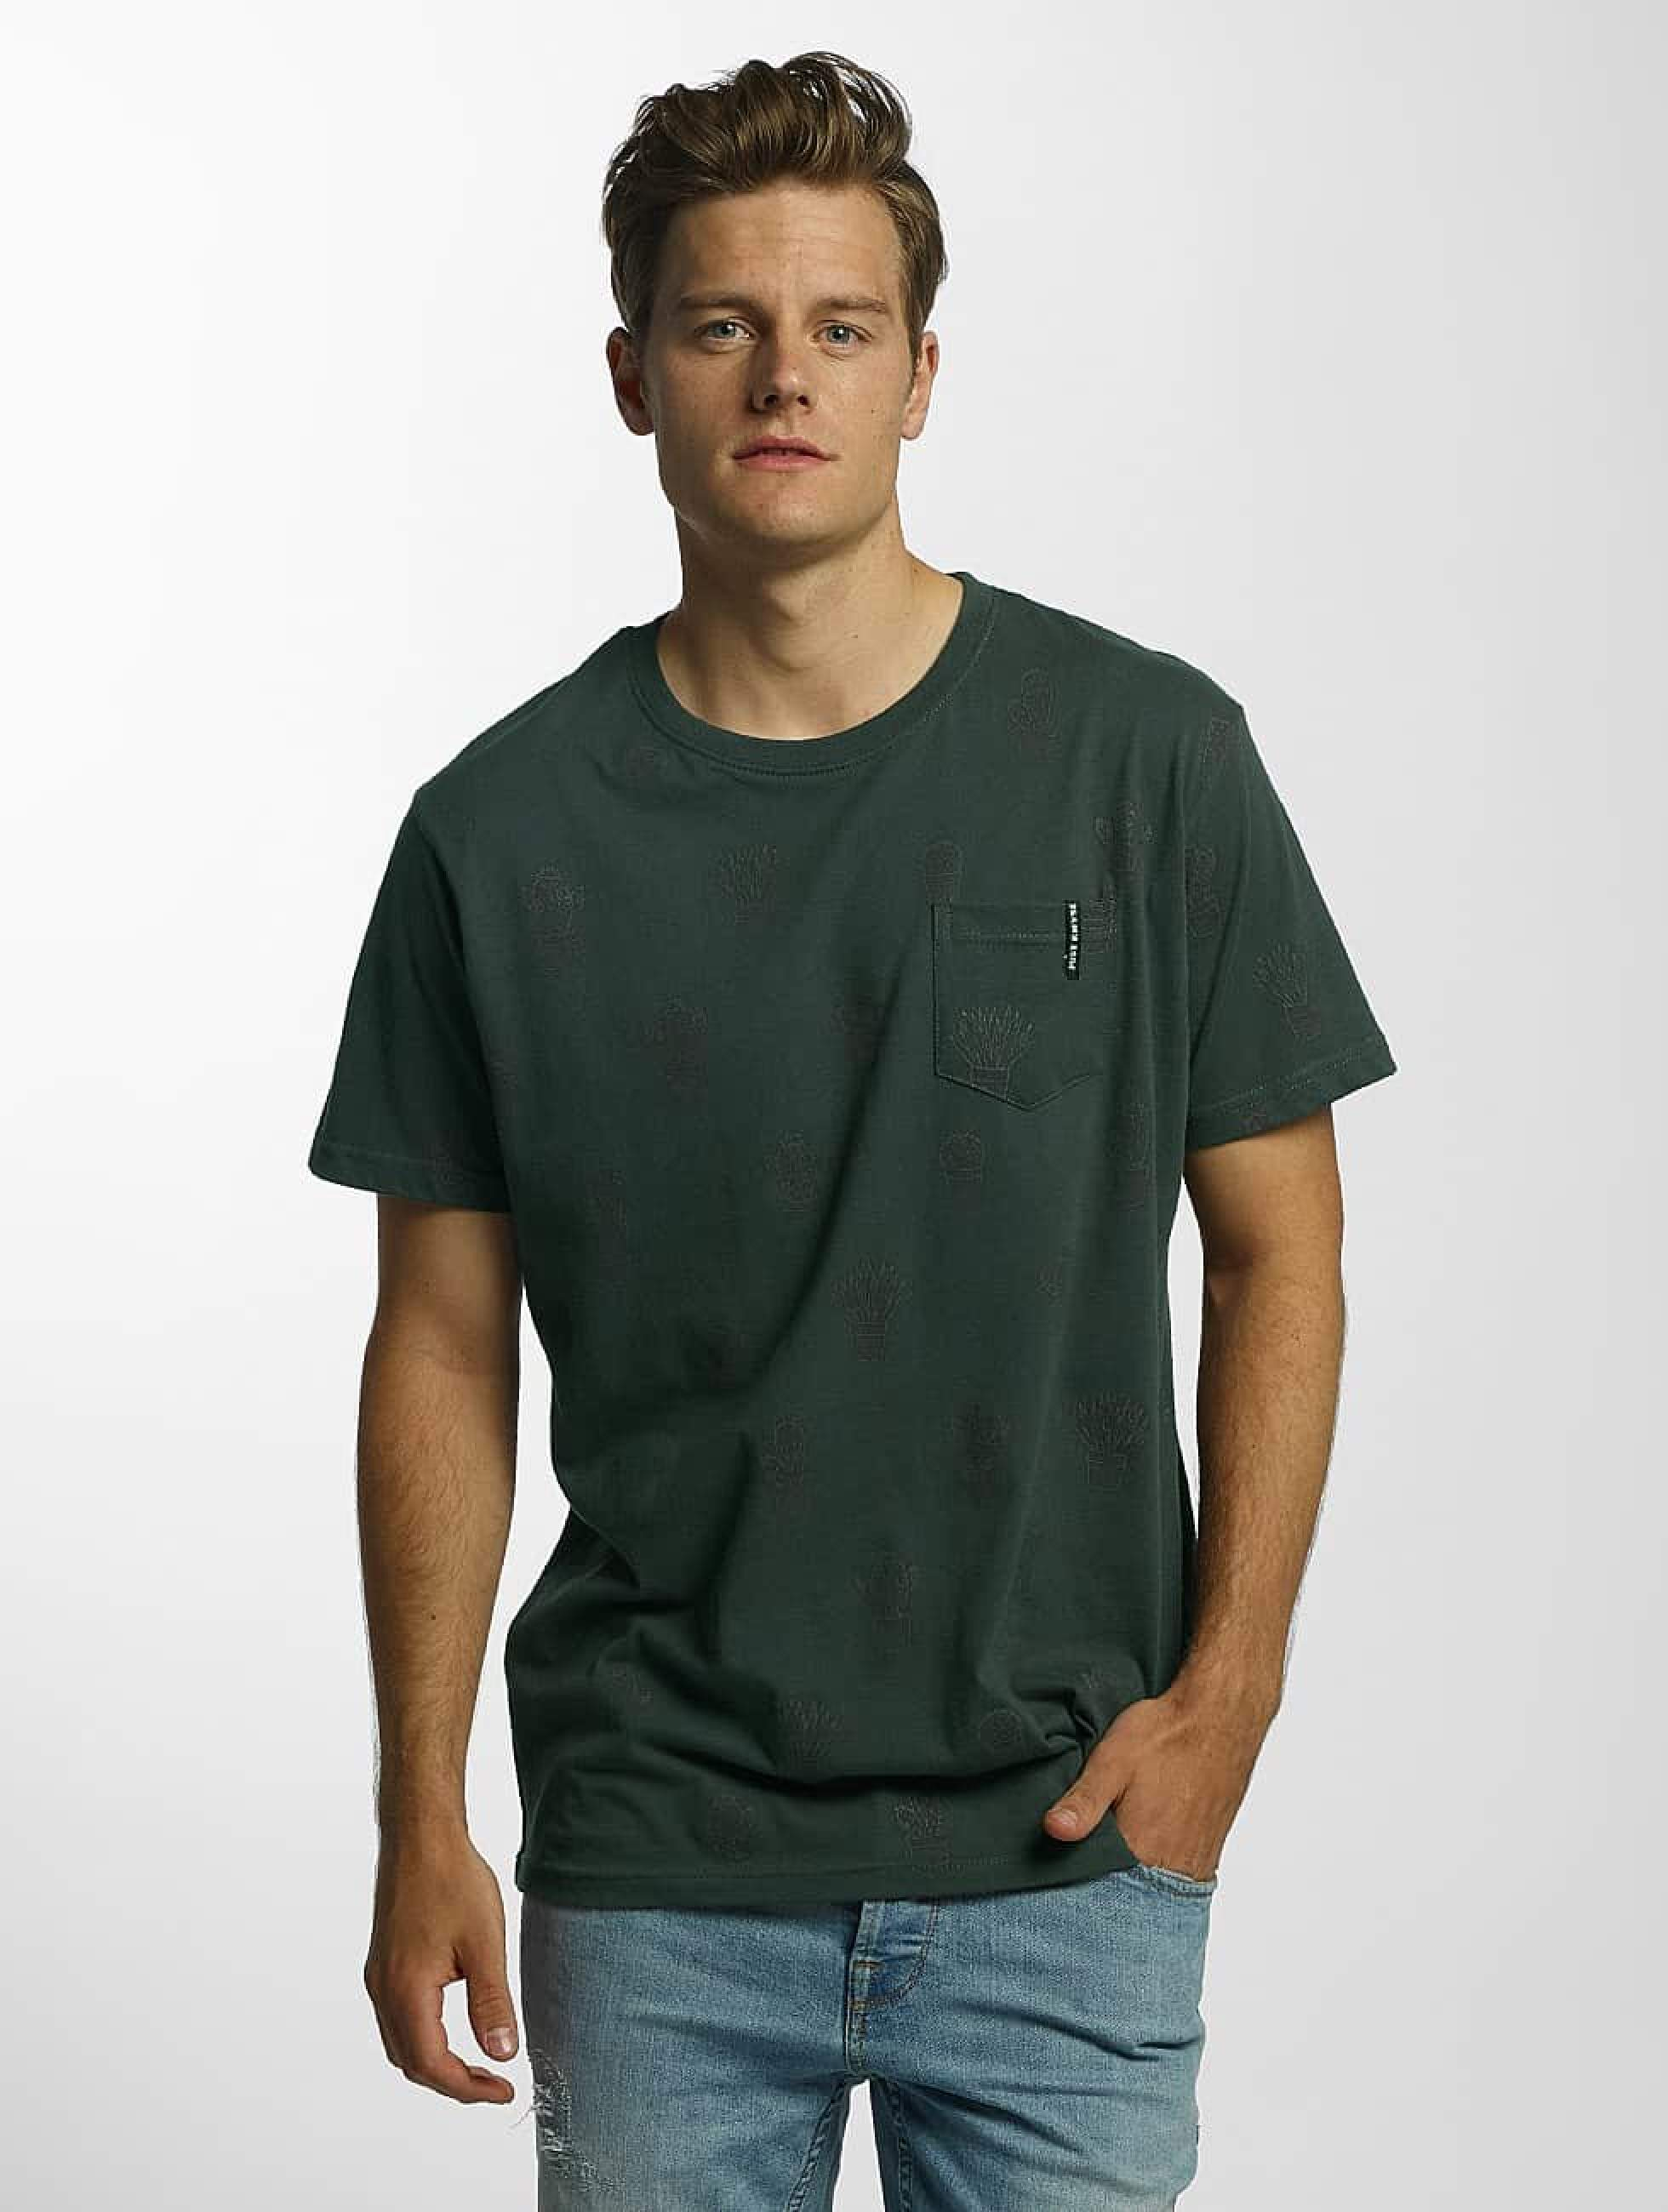 Just Rhyse / T-Shirt Cedarville in green S